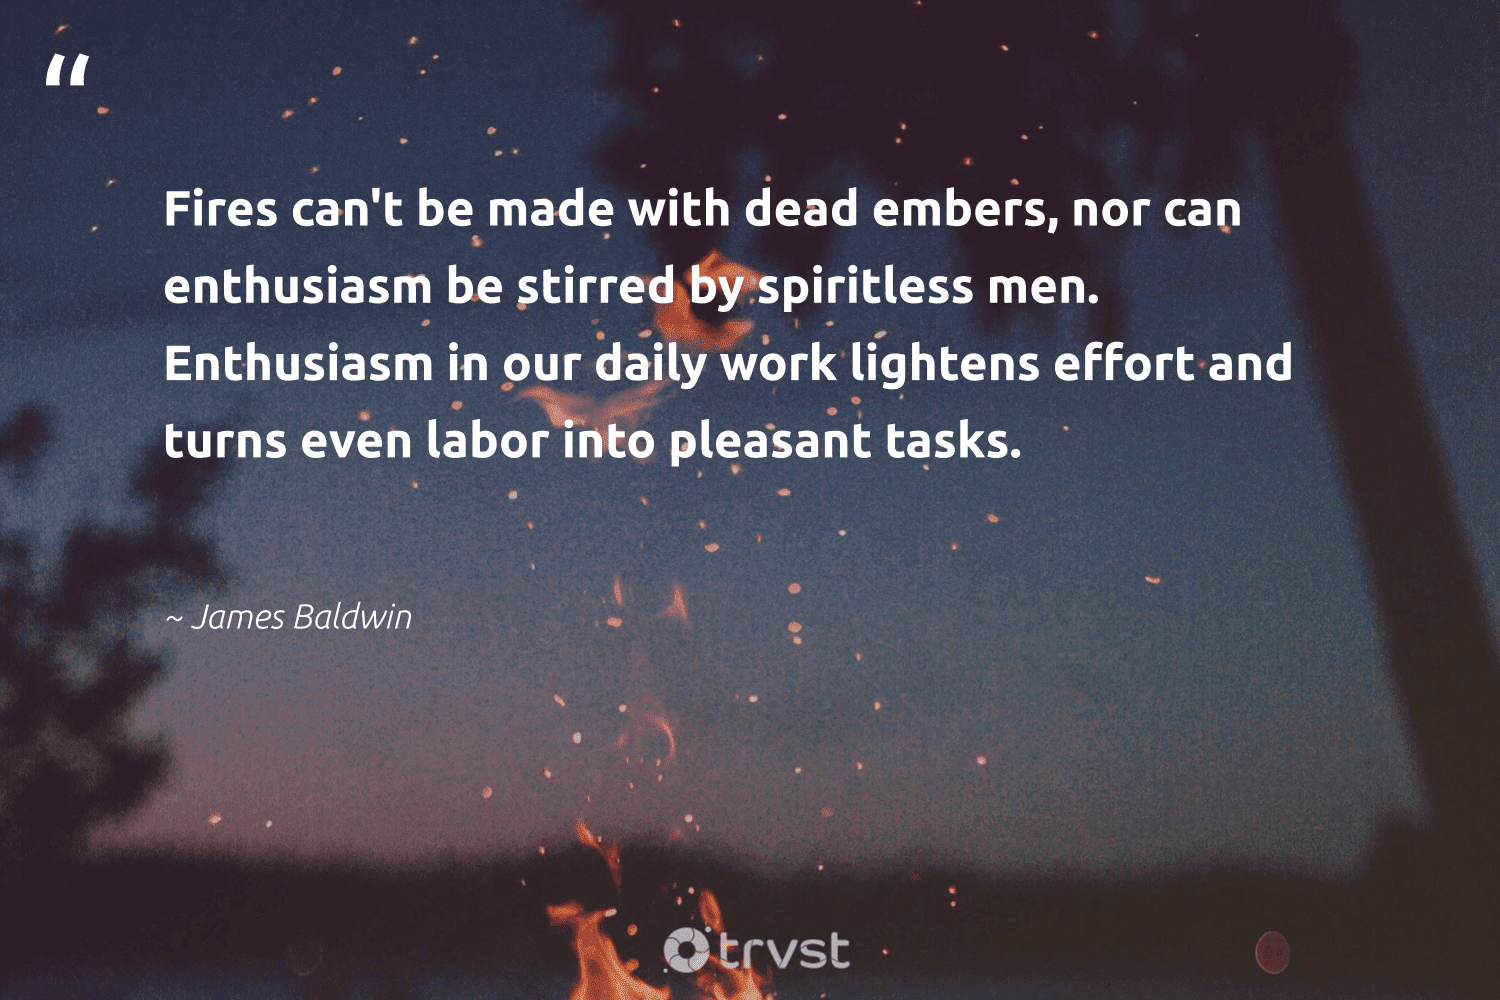 """""""Fires can't be made with dead embers, nor can enthusiasm be stirred by spiritless men. Enthusiasm in our daily work lightens effort and turns even labor into pleasant tasks.""""  - James Baldwin #trvst #quotes #begreat #collectiveaction #futureofwork #bethechange #softskills #socialchange #nevergiveup #changetheworld #impact #ecoconscious"""